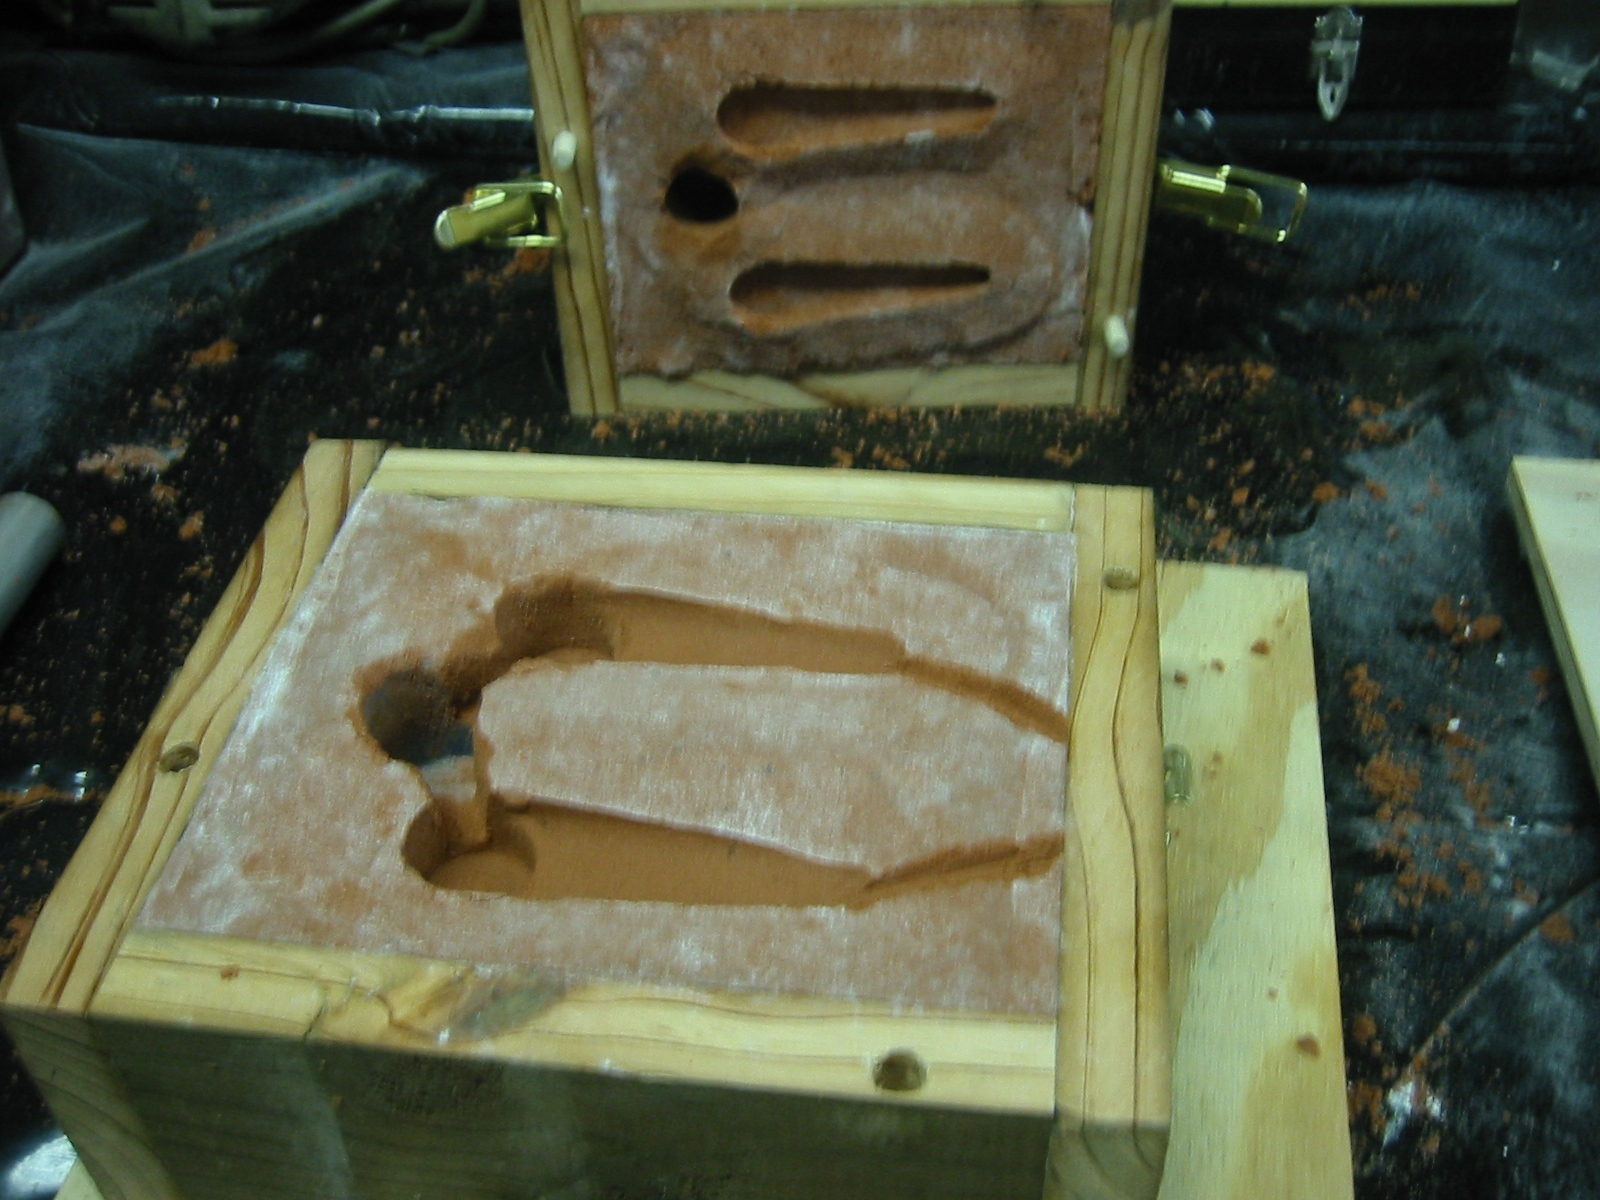 (13) Using a knife or blade carve out the